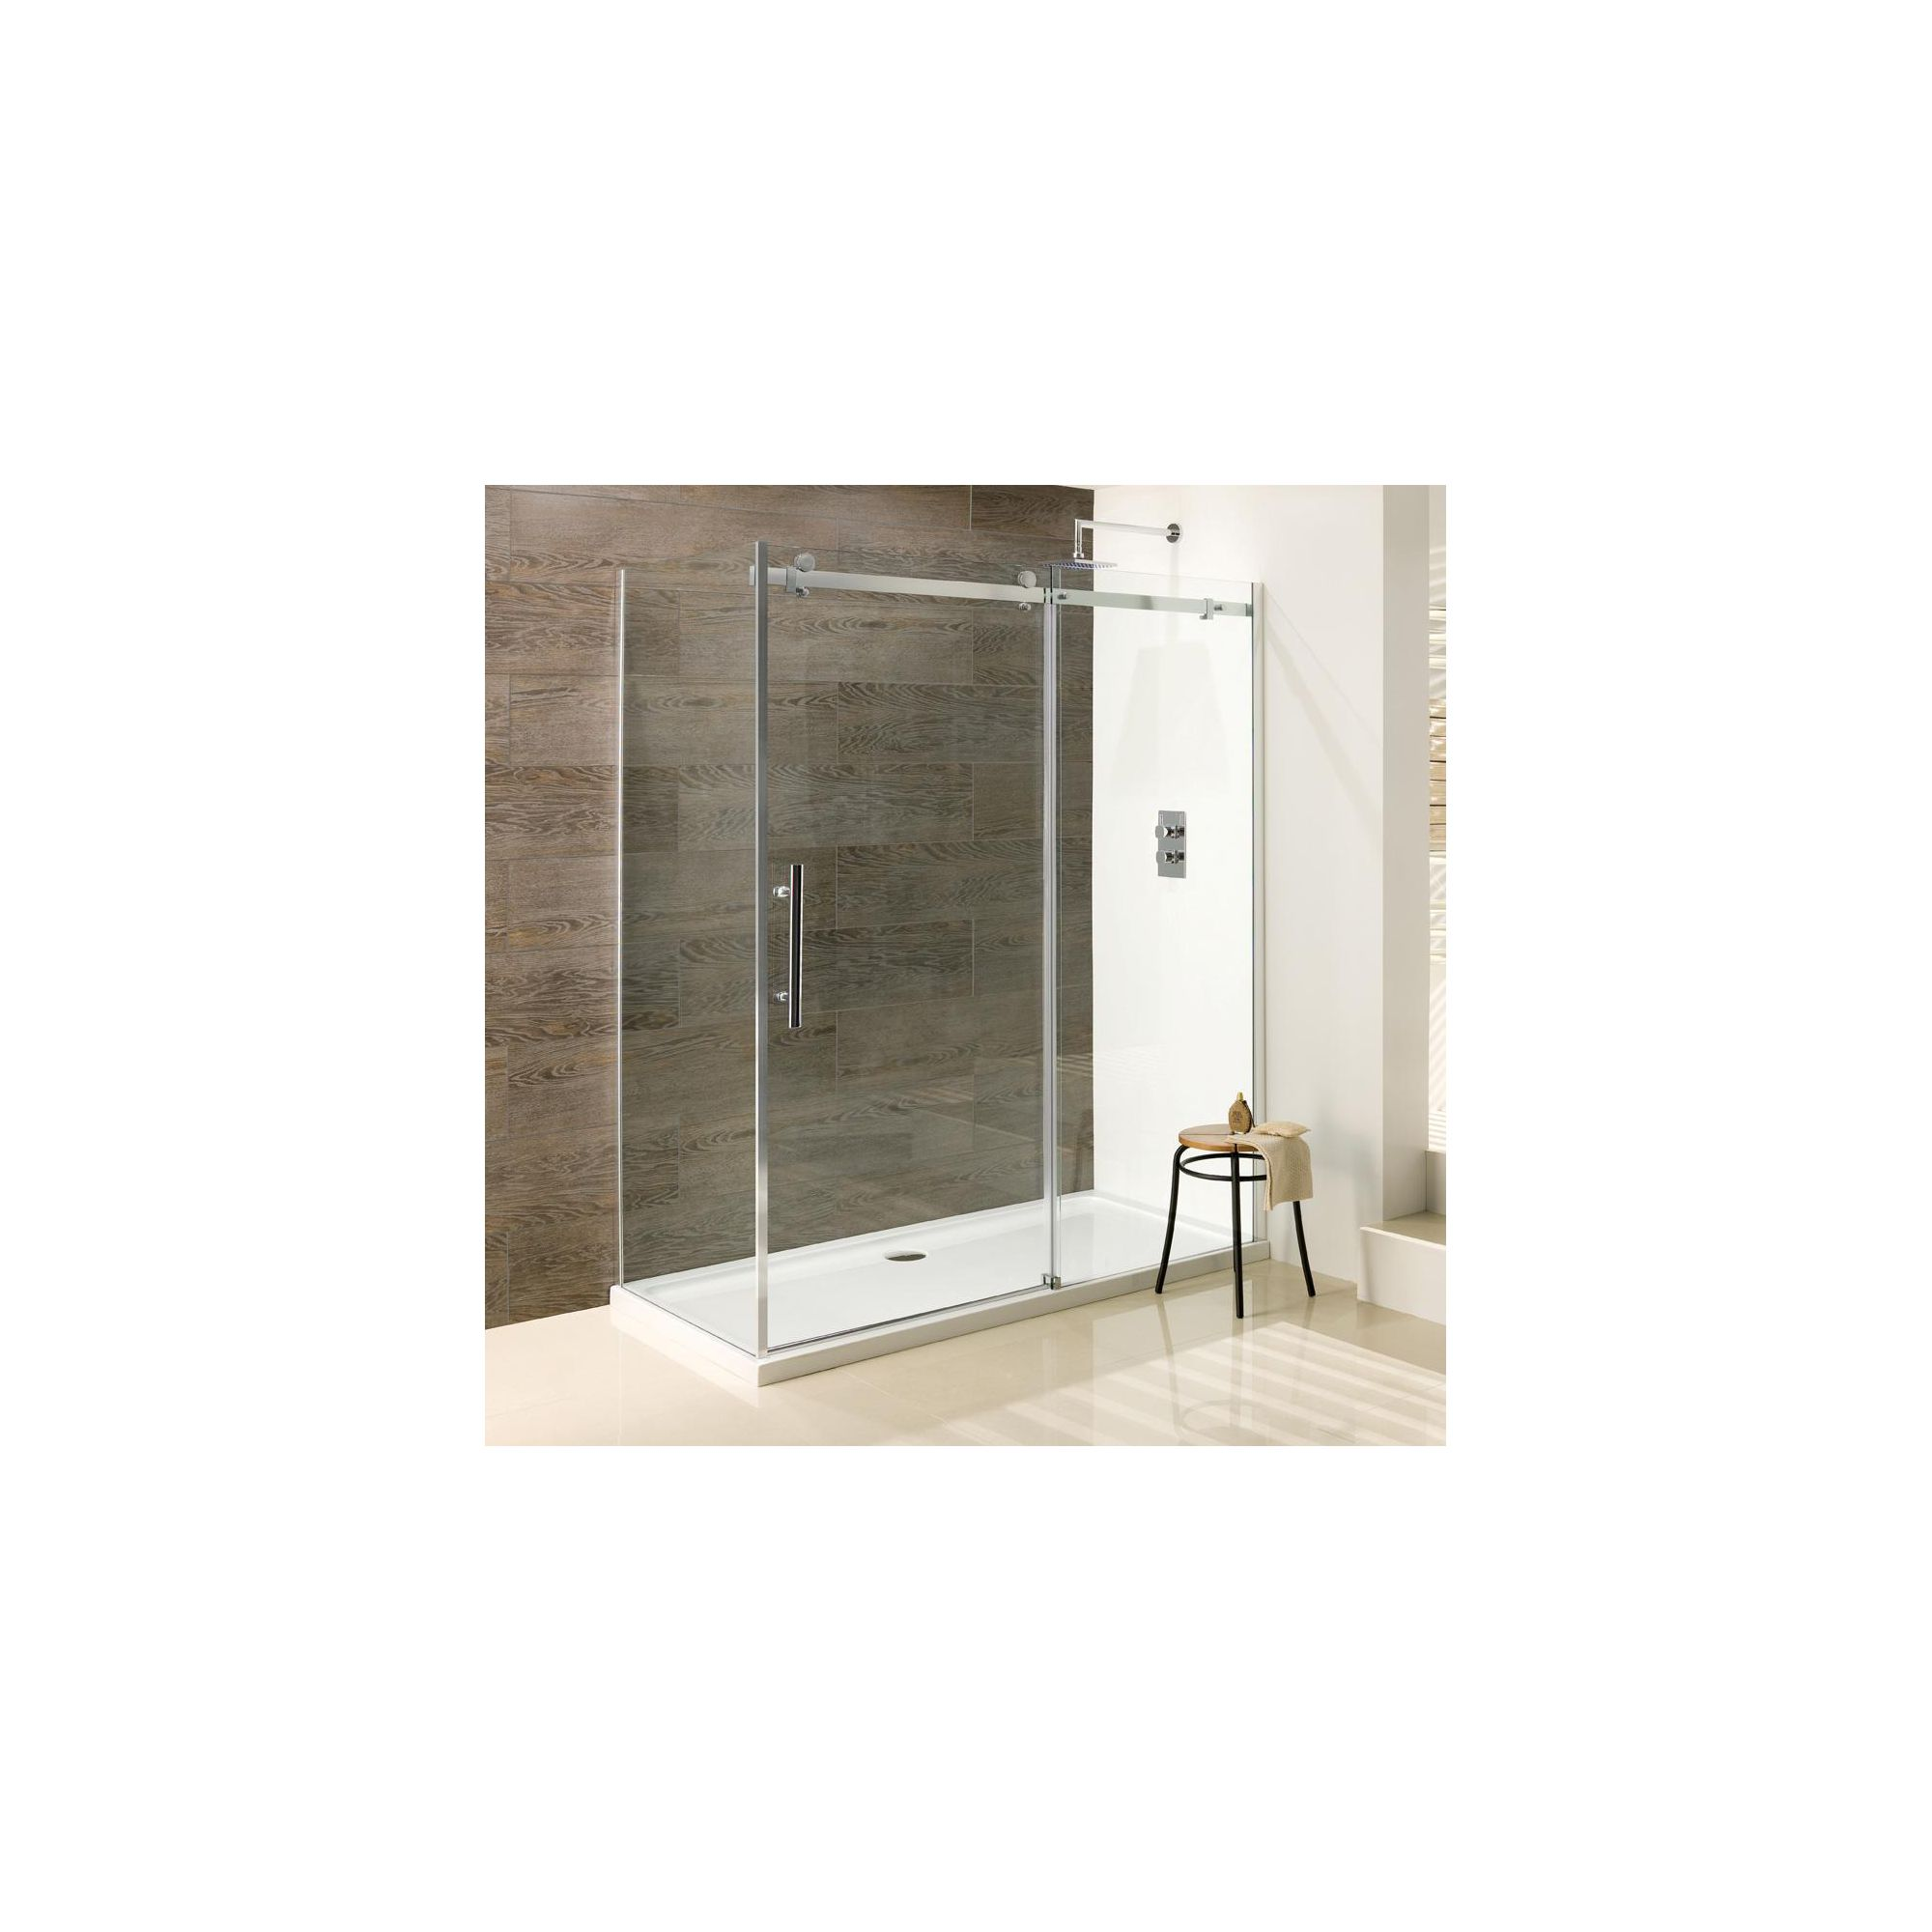 Duchy Deluxe Silver Sliding Door Shower Enclosure with Side Panel 1100mm x 700mm (Complete with Tray), 10mm Glass at Tesco Direct